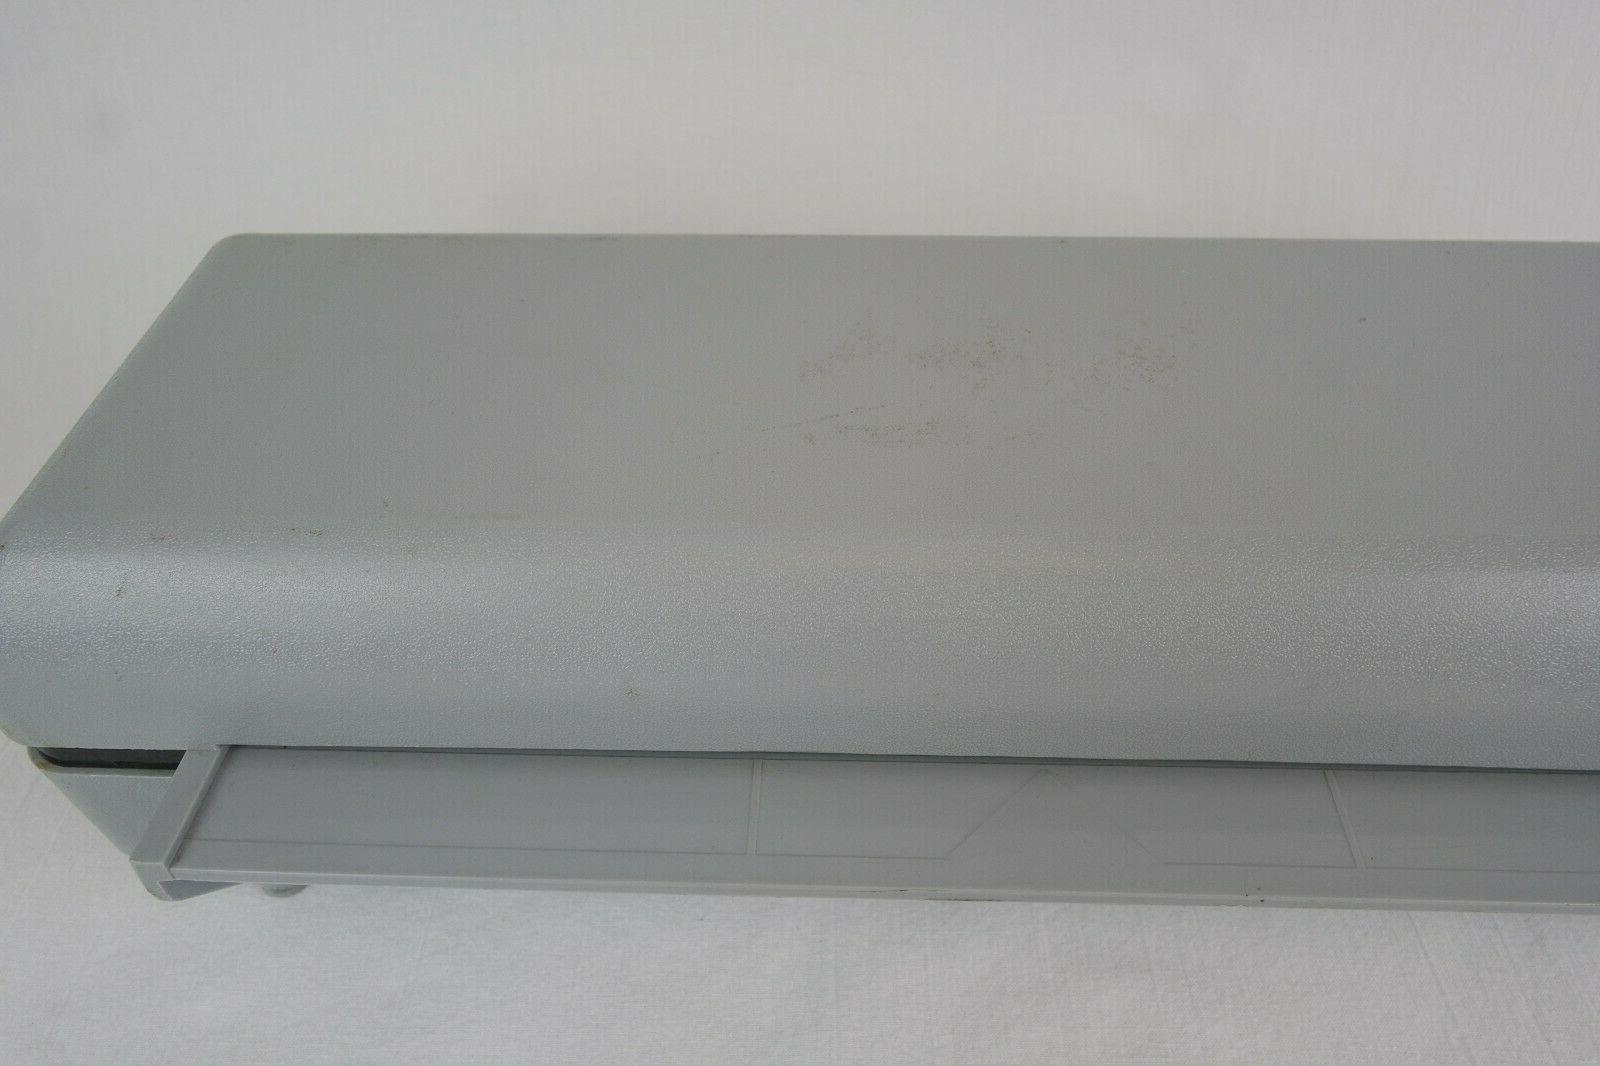 Seal Laminator Model CT1200, Tested and Working